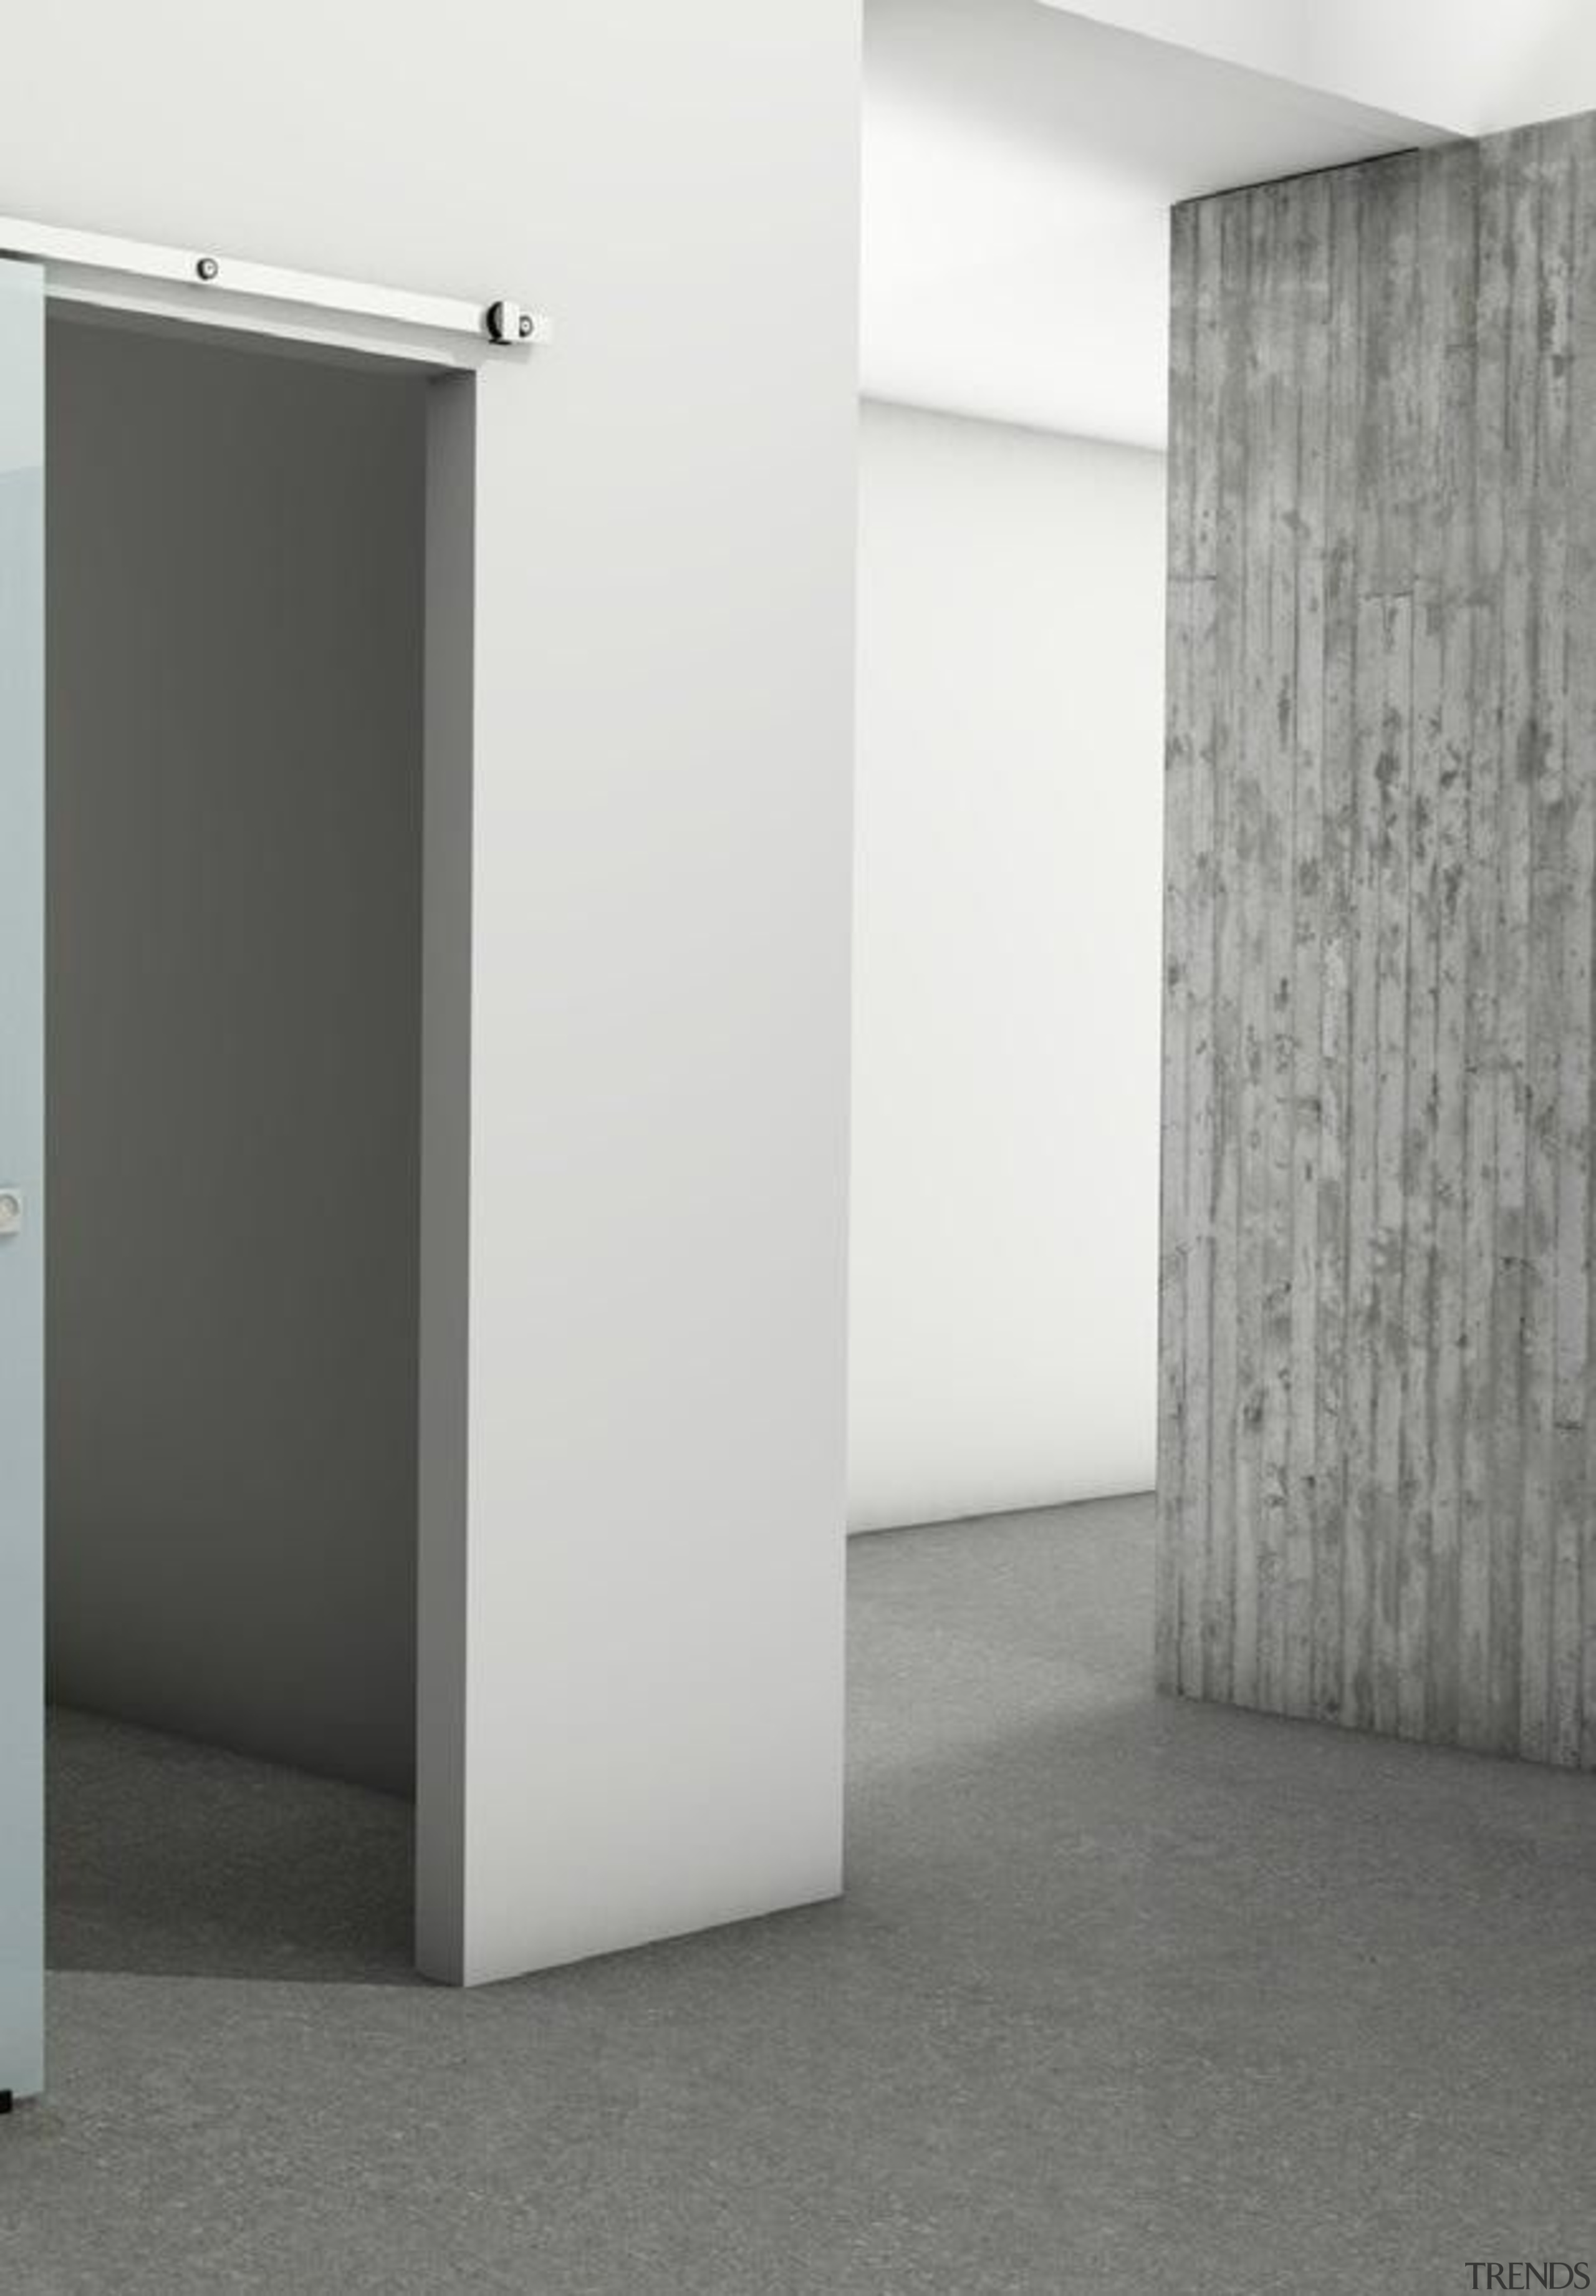 Mardeco International Ltd is an independent privately owned door, floor, product design, structure, wall, gray, white